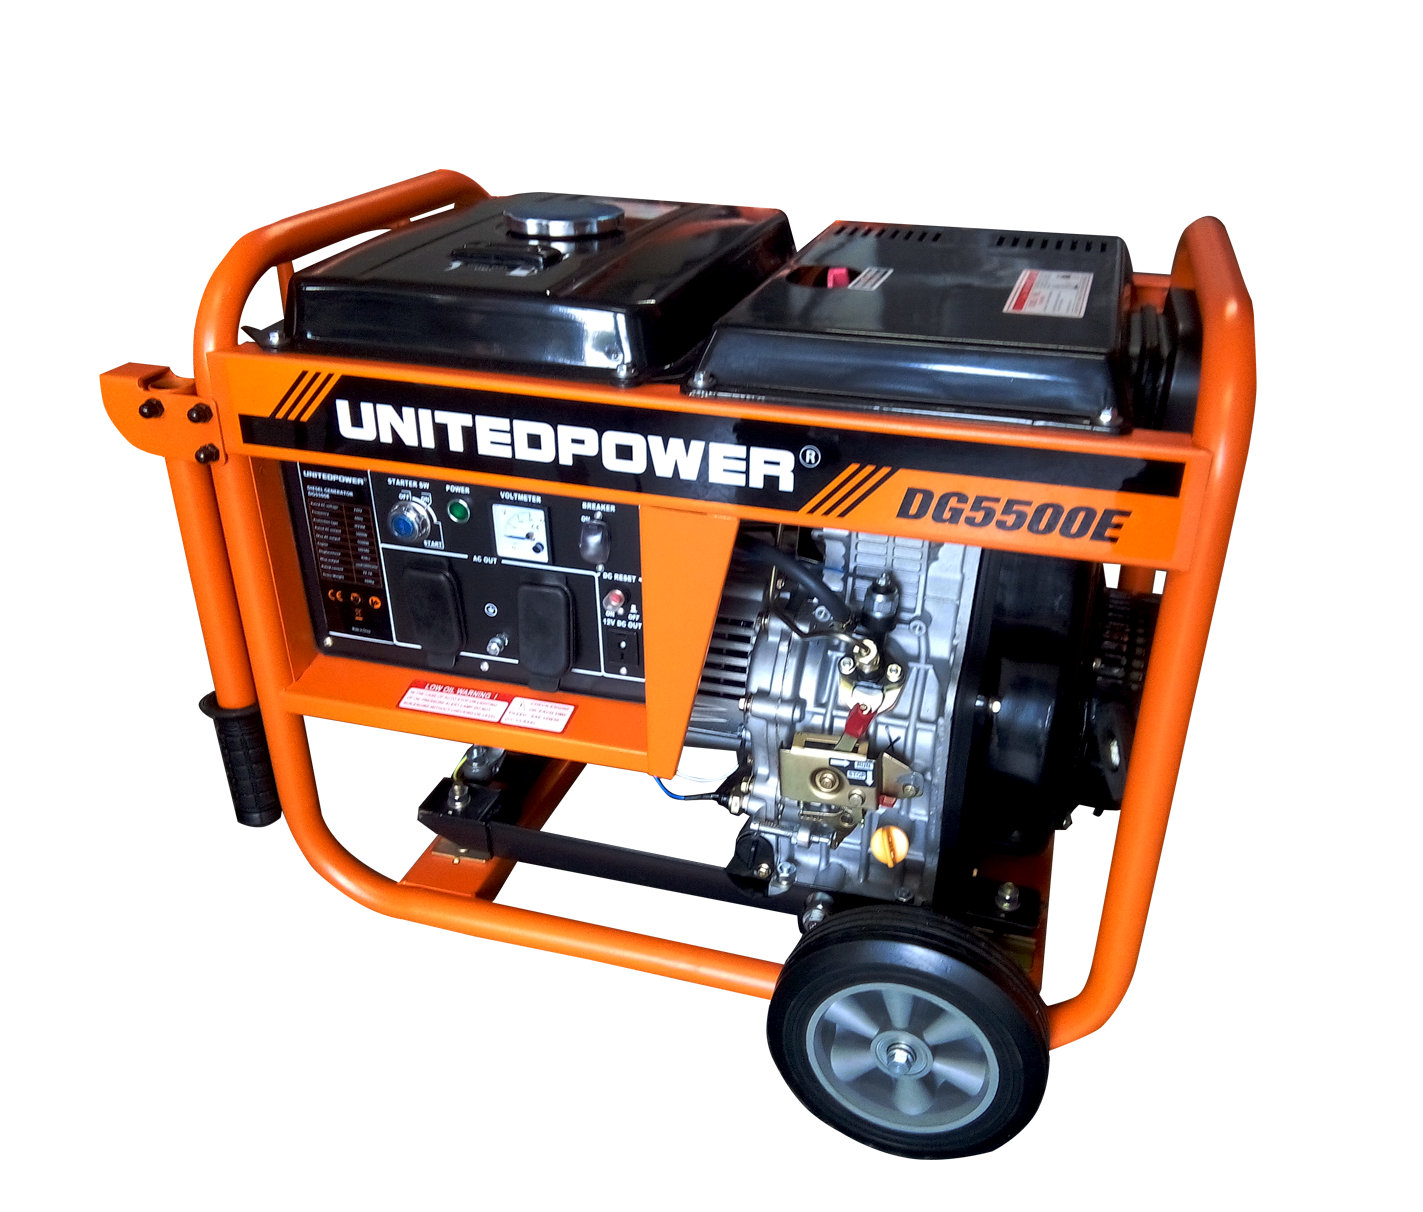 United Power Generator